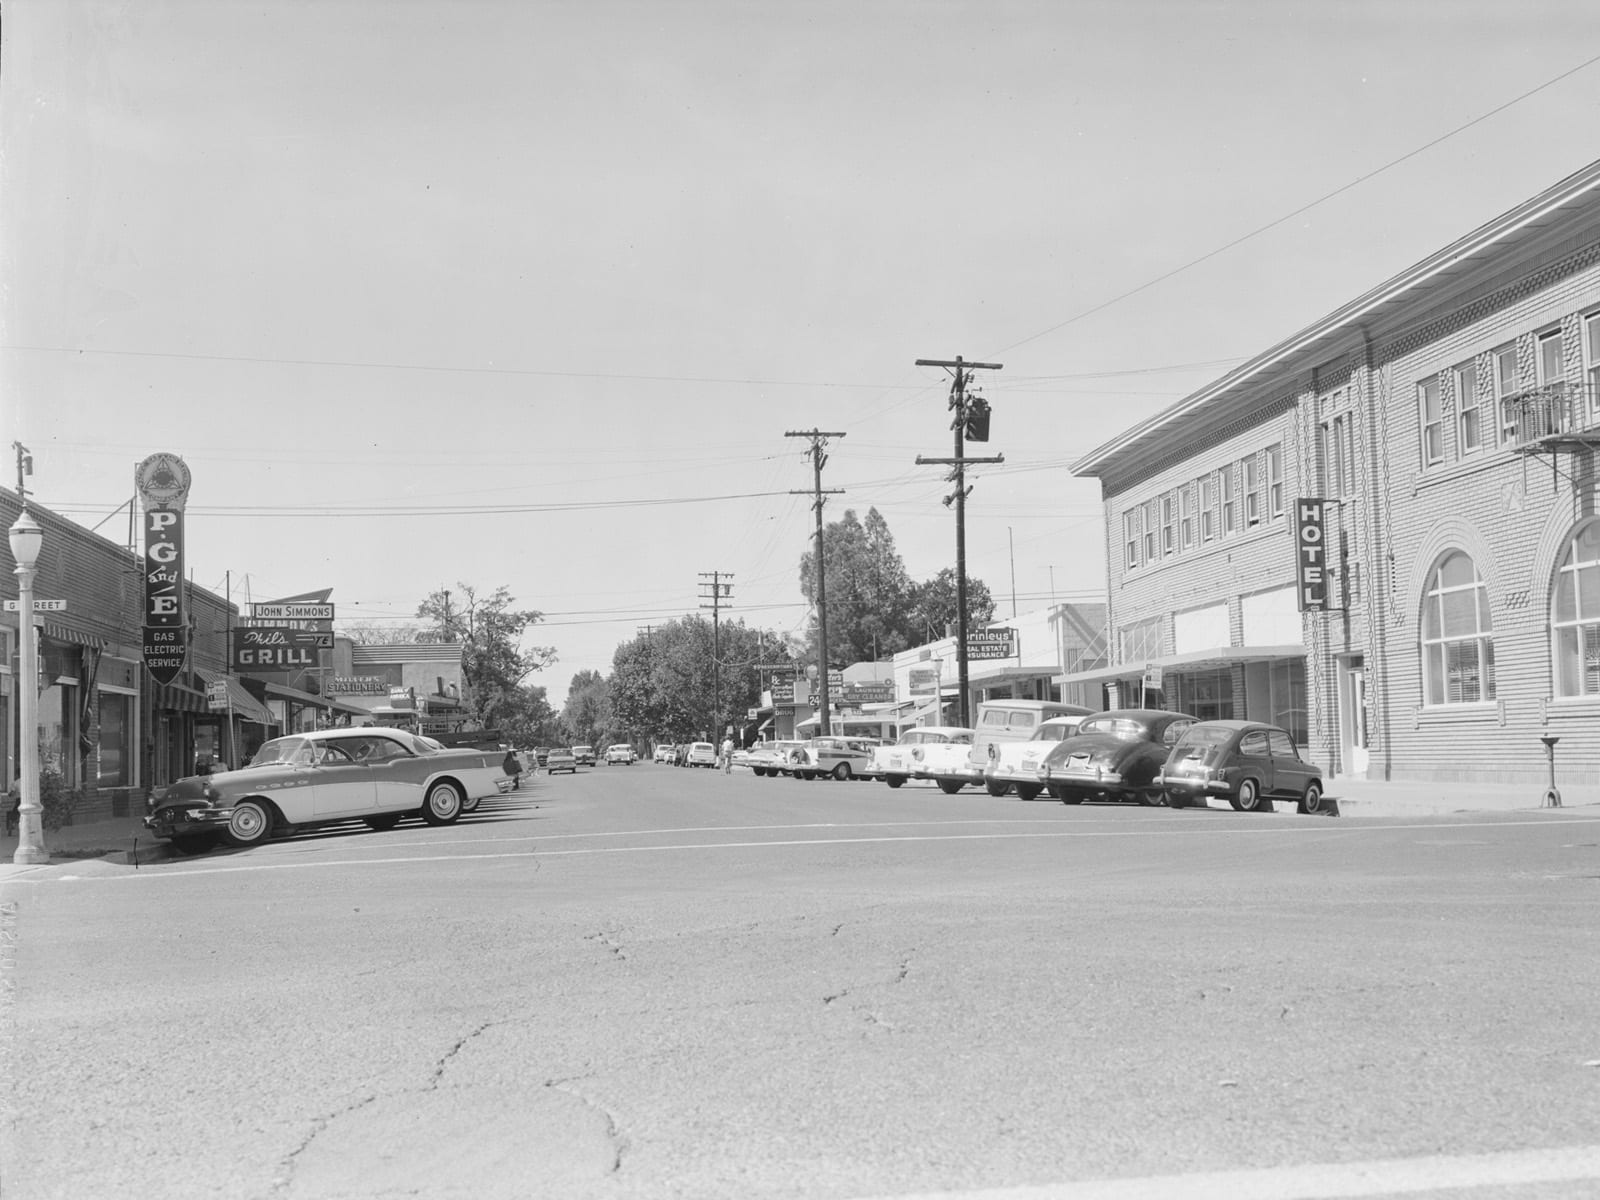 Second Street at G street, looking west, 1960